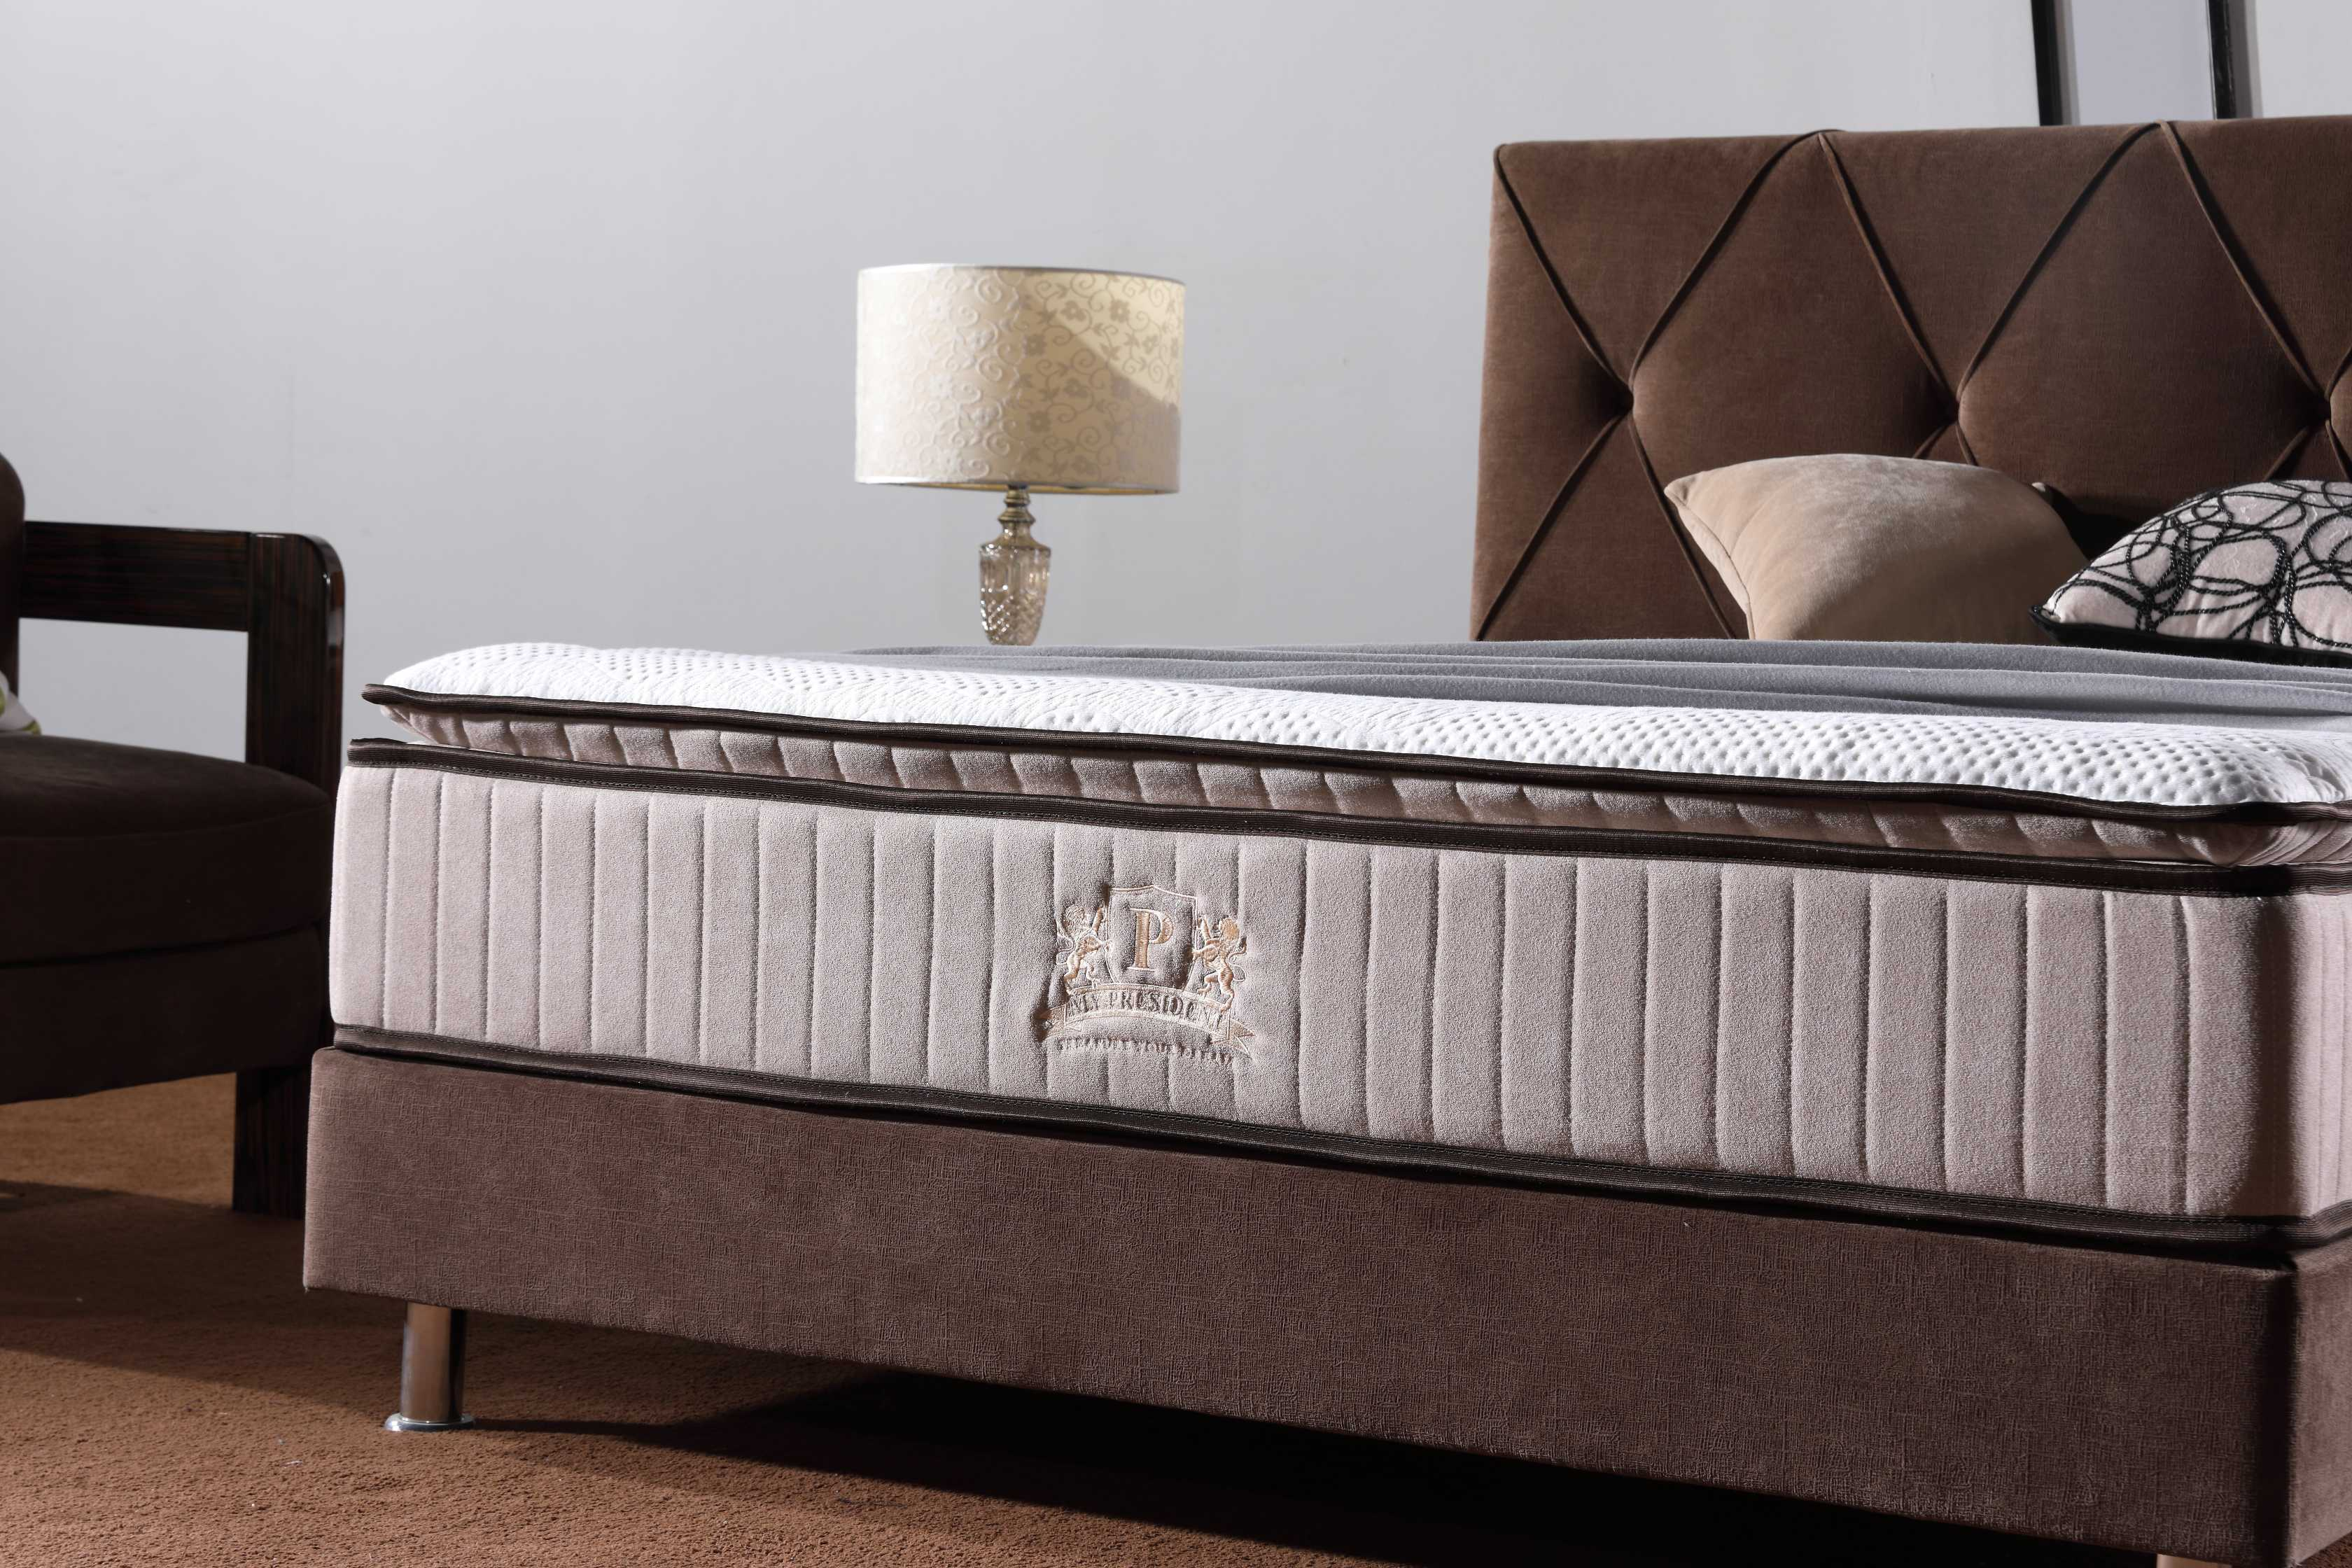 Grab My Crystal Super Single Mattress in Singapore. Call 9067 7990